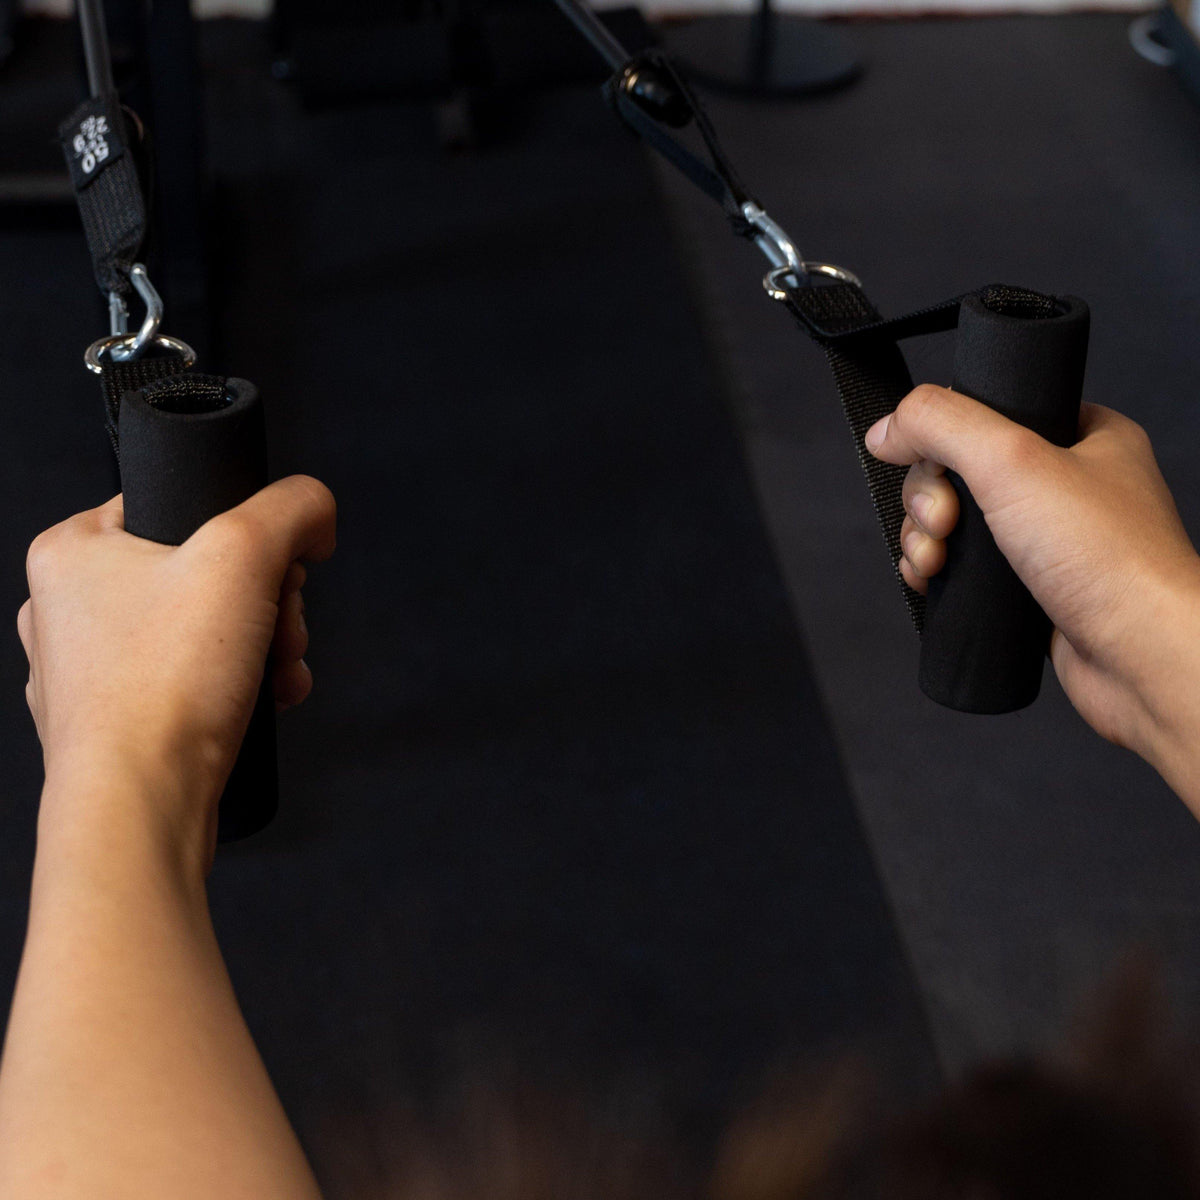 Trainer working out arms and chest using Spartan Resistance bands at the gym.